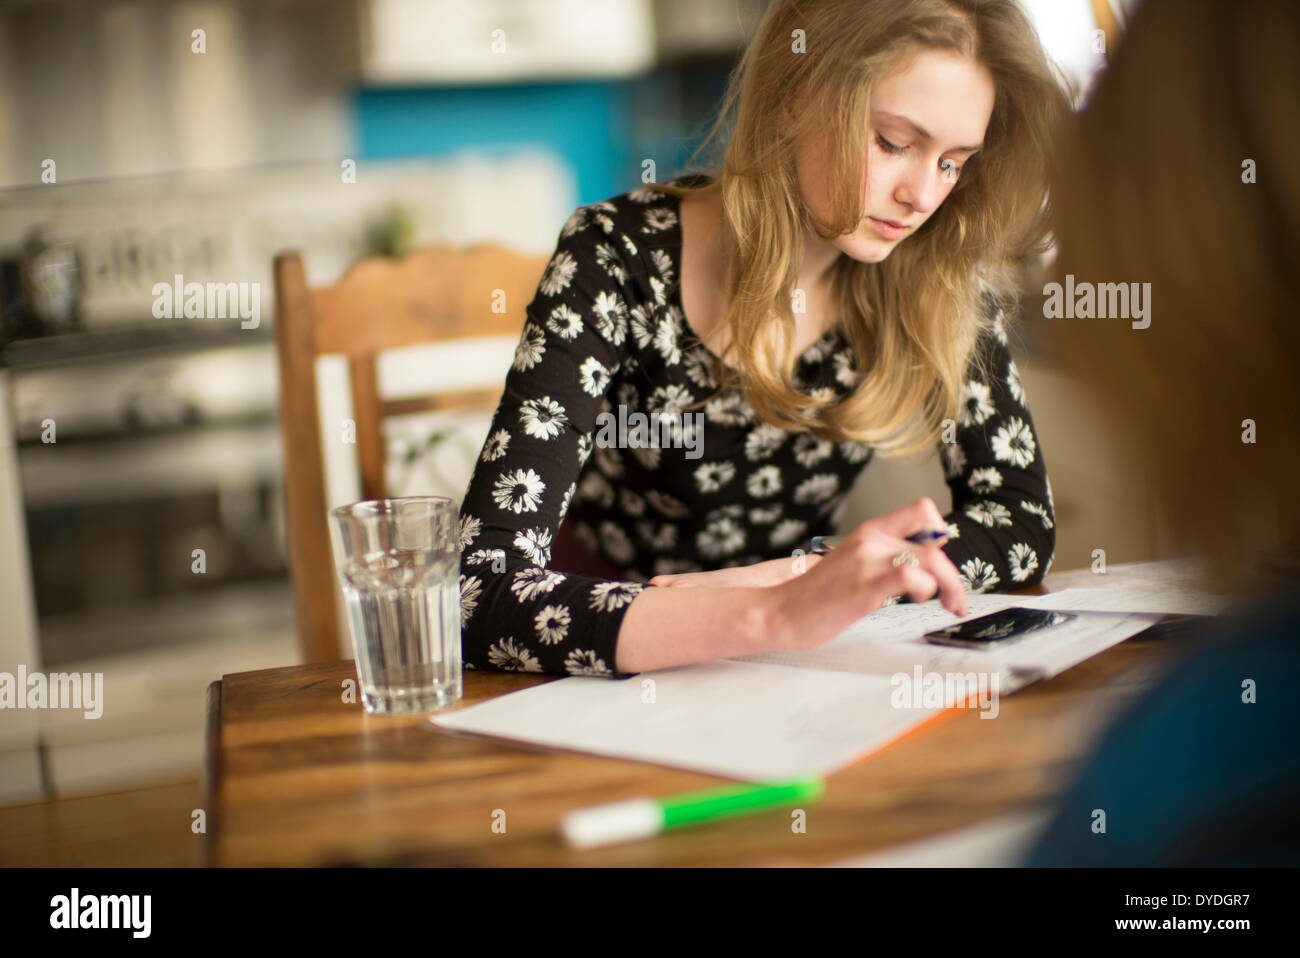 A 16 year old girl doing math homework on the kitchen table. - Stock Image